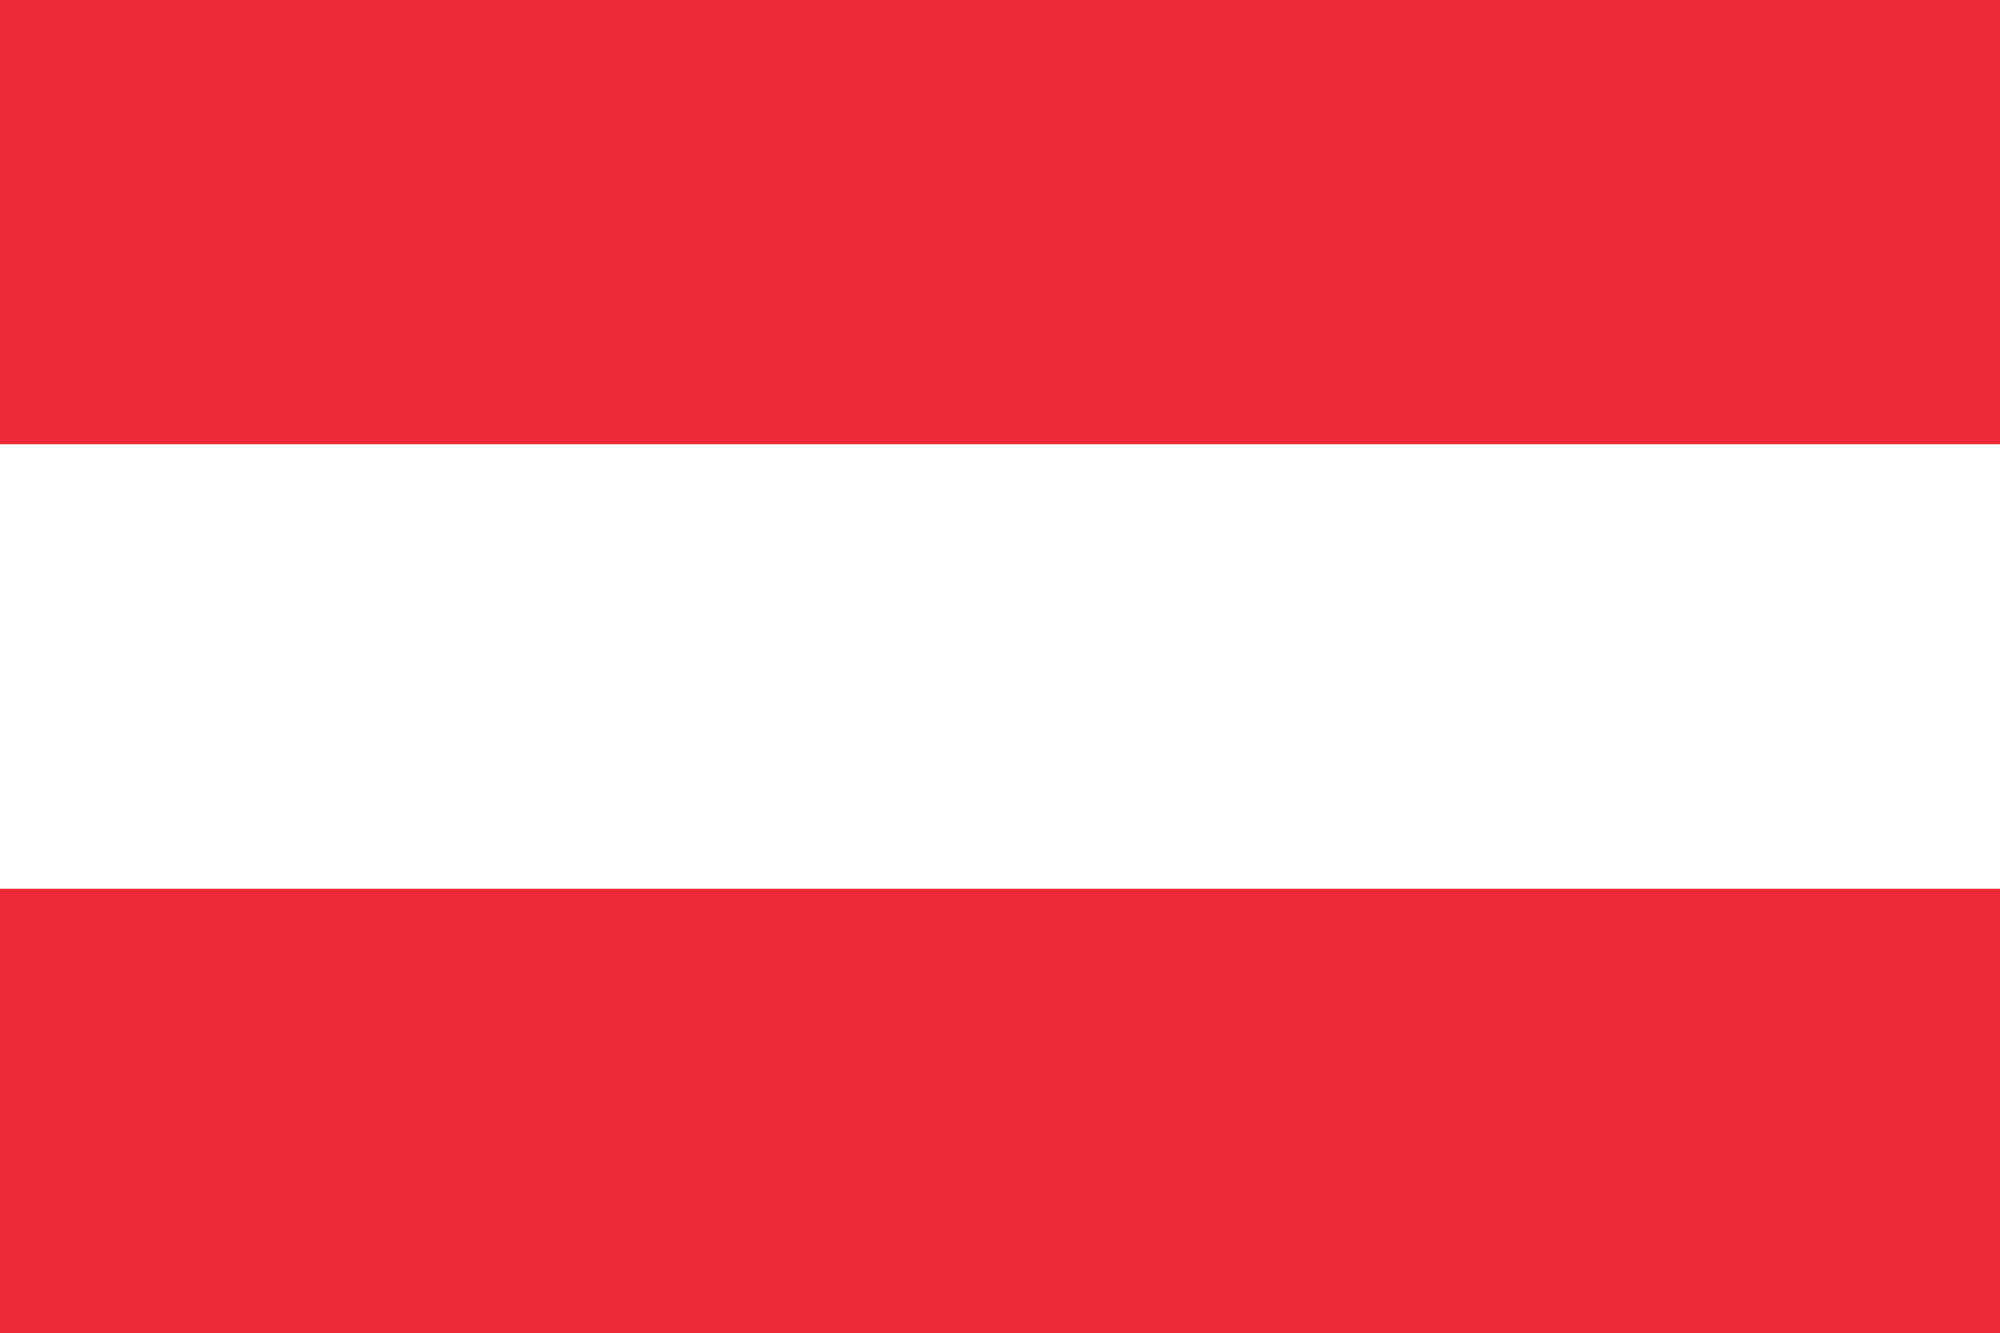 austria-flag-large.png